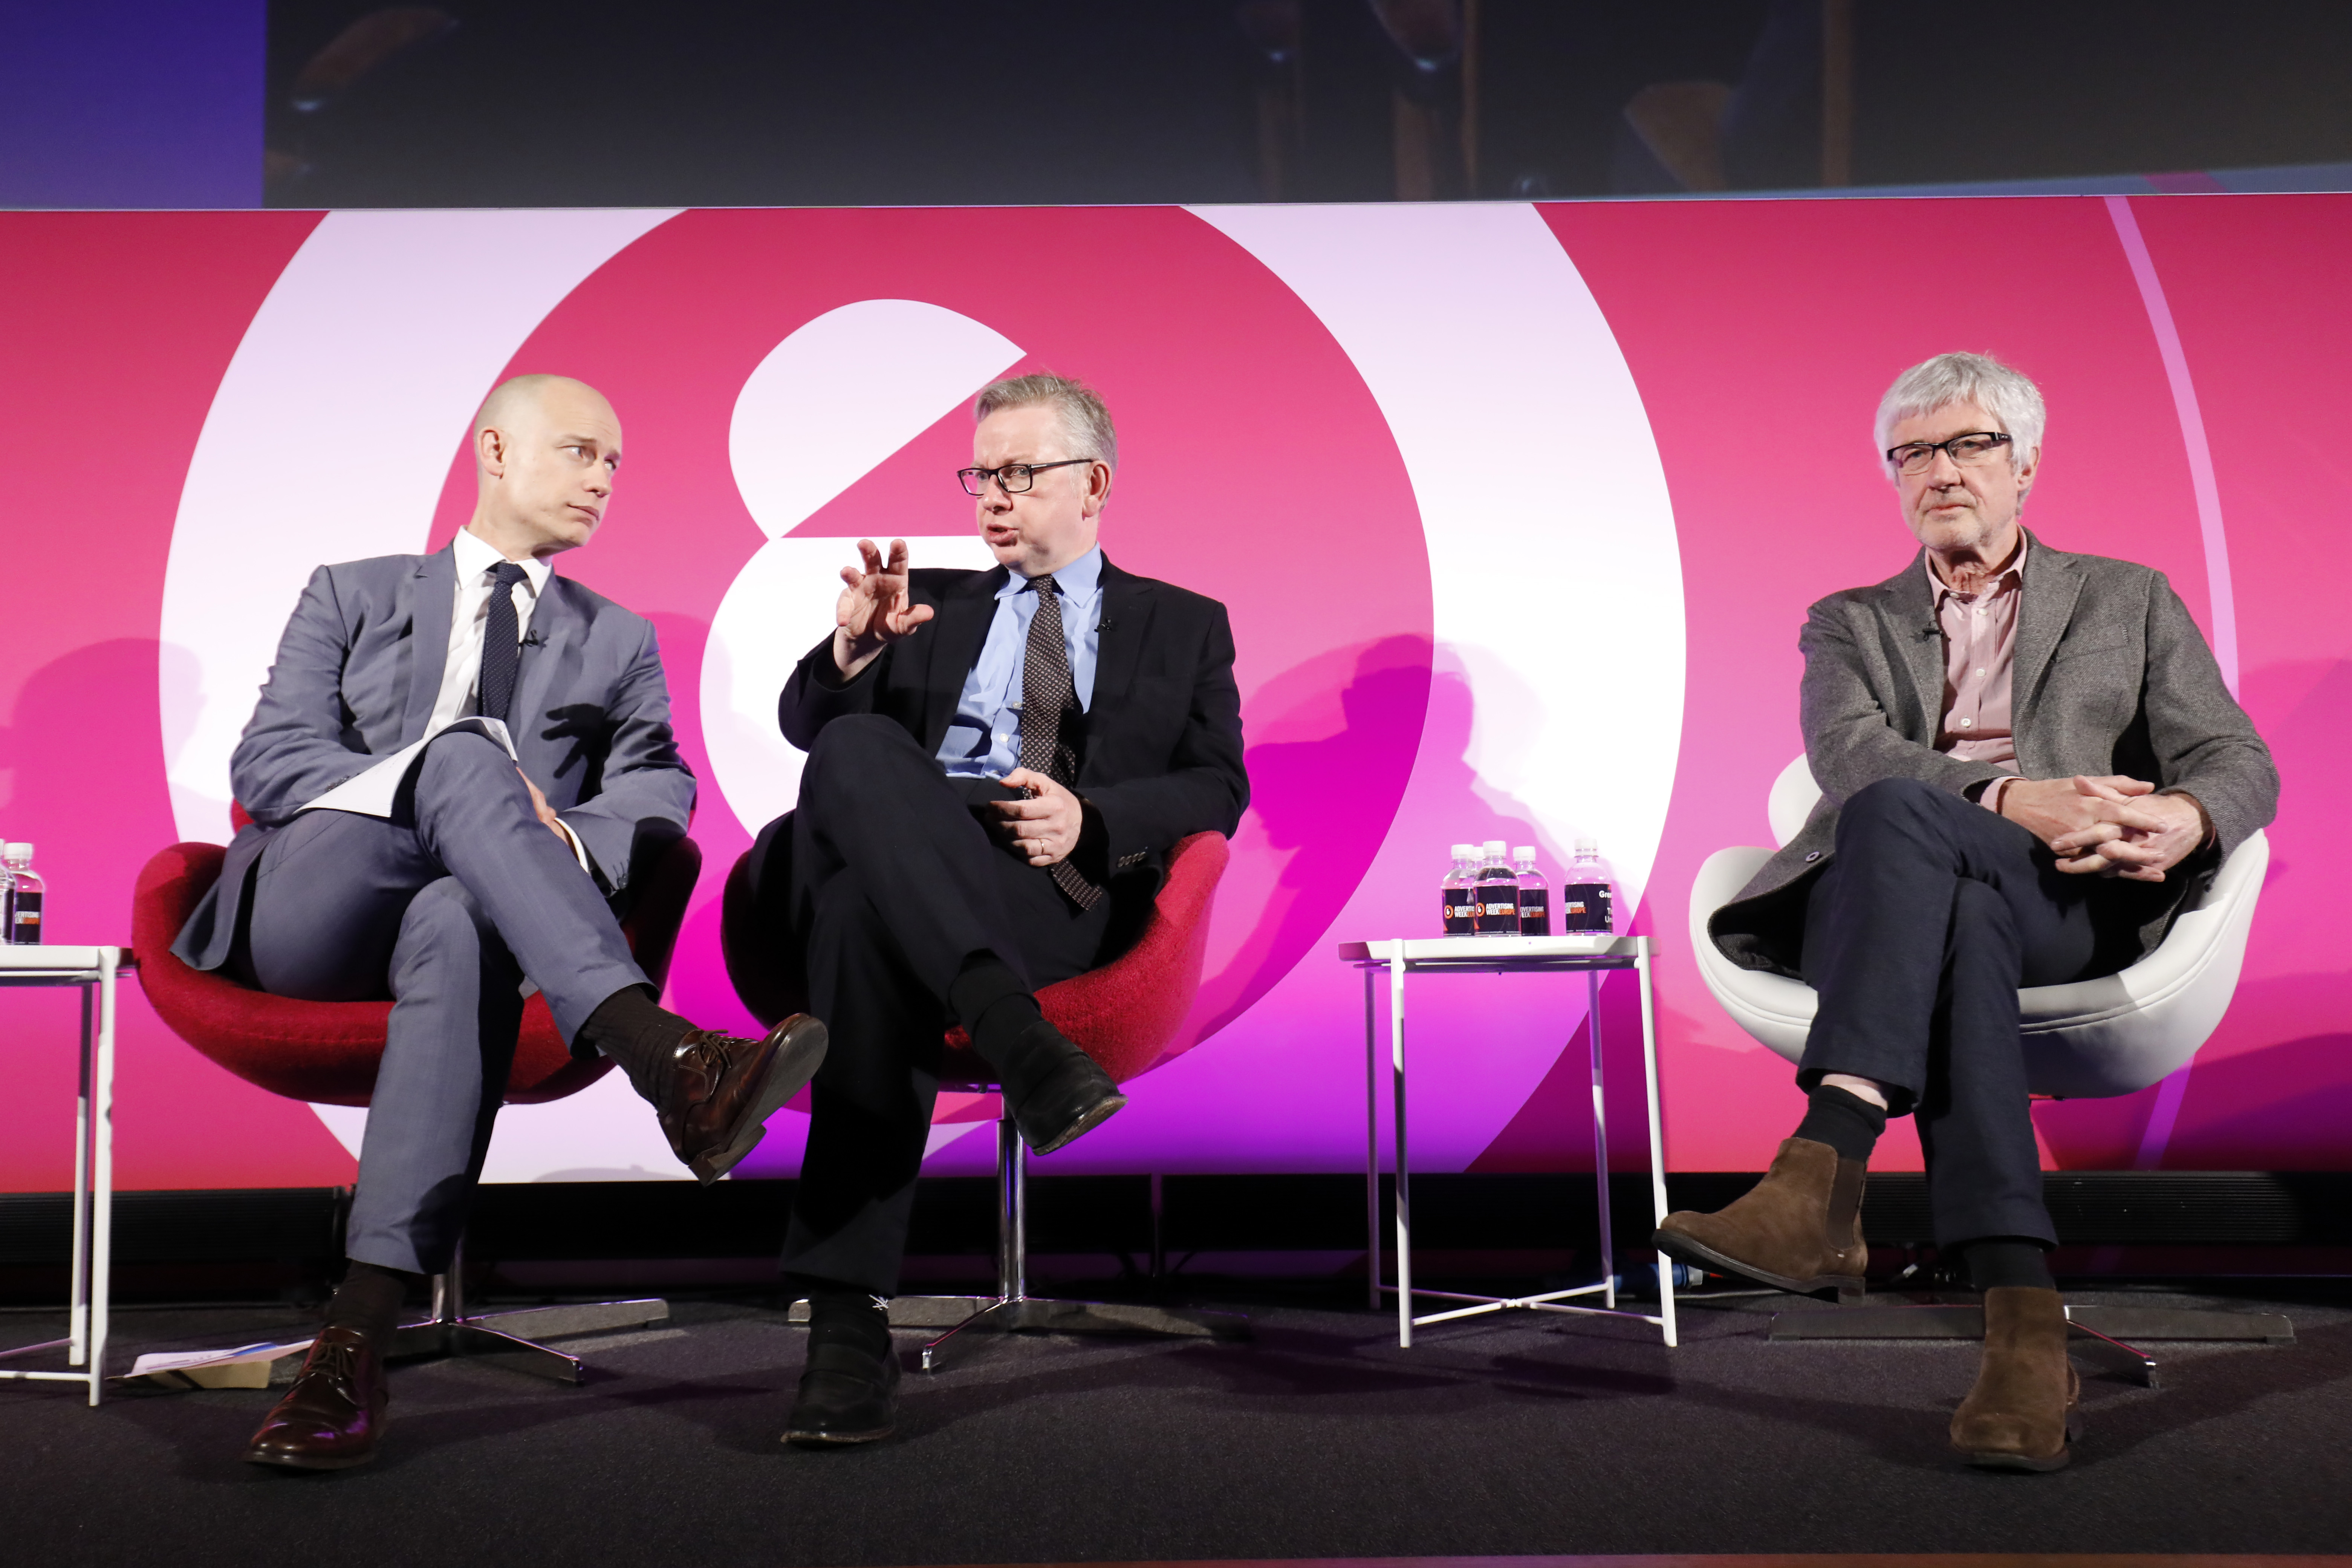 Daily Debate: The Slogan 'Take Back Control' Has A Con At Its Heart seminar, Advertising Week Europe 2017, Fast Company Stage, Picturehouse Central, London, UK